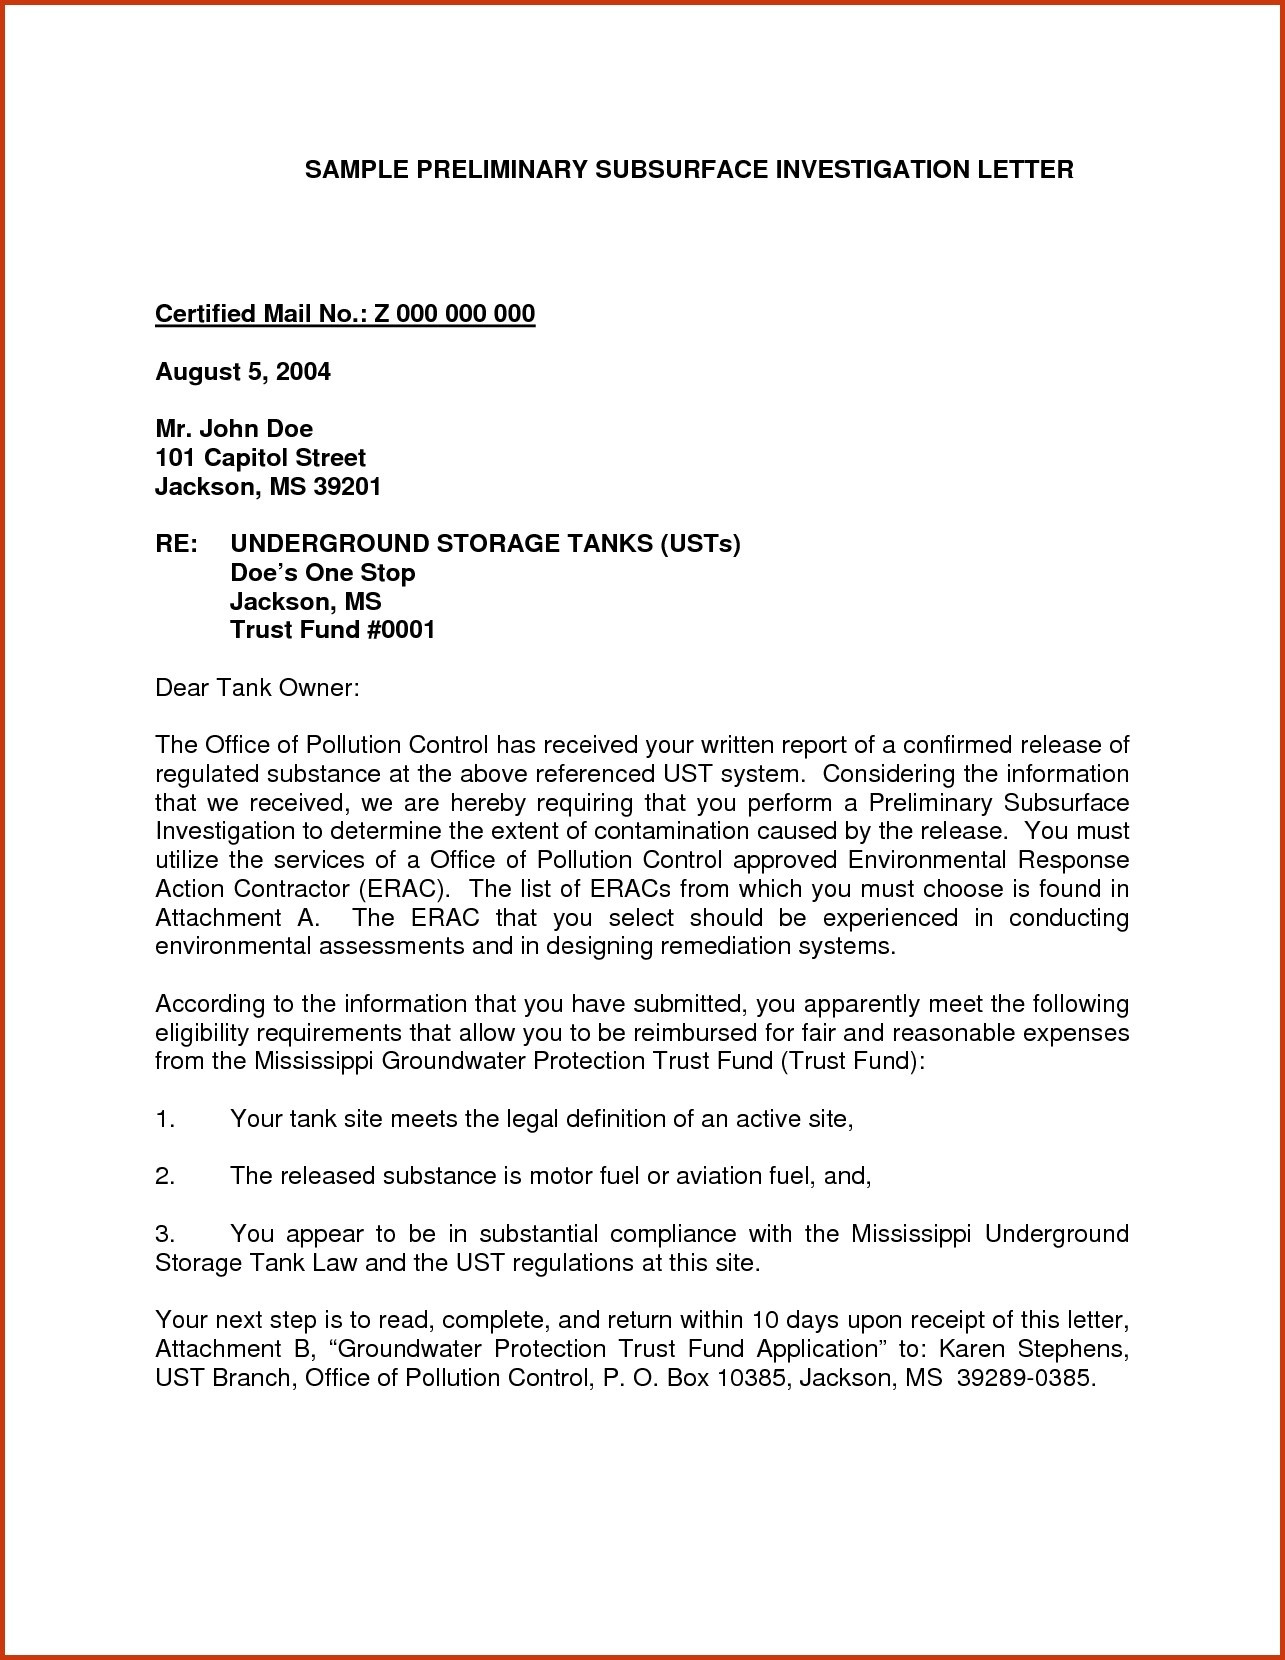 investigation letter template example-ficial Letter Writing Samples Lovely Sample Business Letter Separation Agreement Sample Lovely 0d ficial Letter 15-h